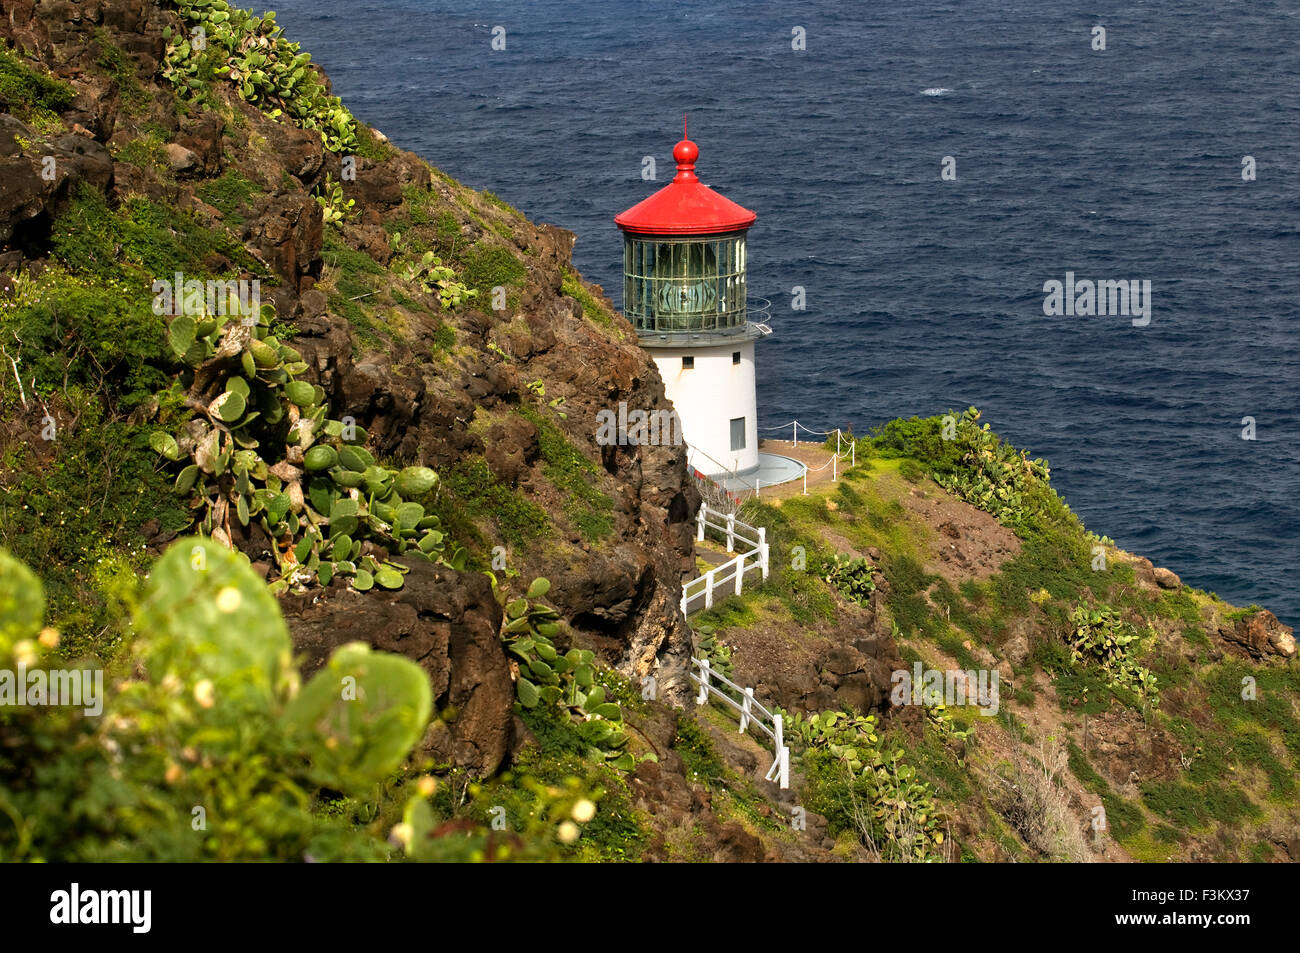 Makapu'u Lighthouse at the eastern end of the island. O'ahu. Hawaii. Makapuʻu Point Lighthouse is a 46-foot - Stock Image